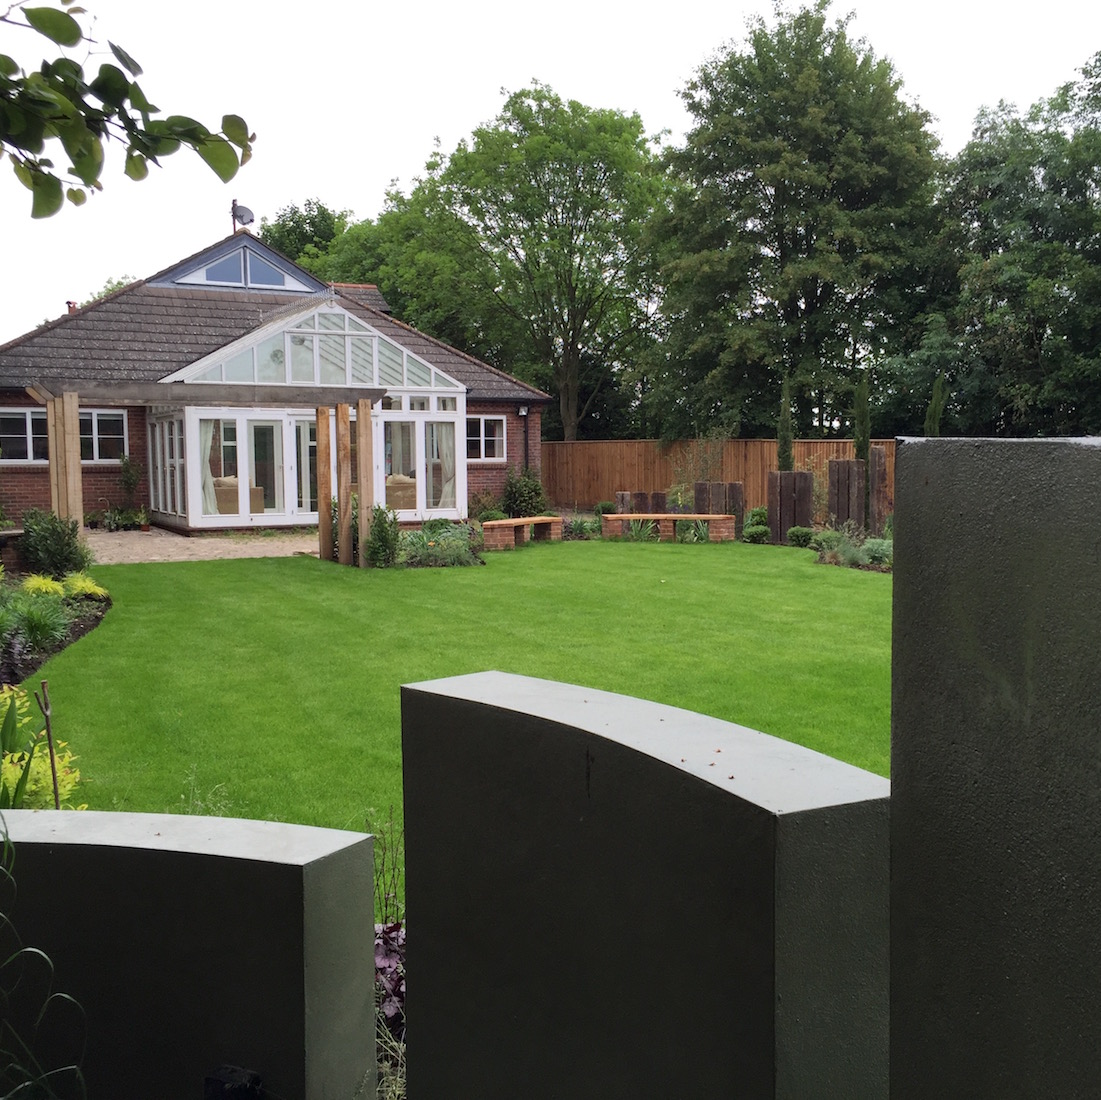 Loxley Curved Rendered Walls